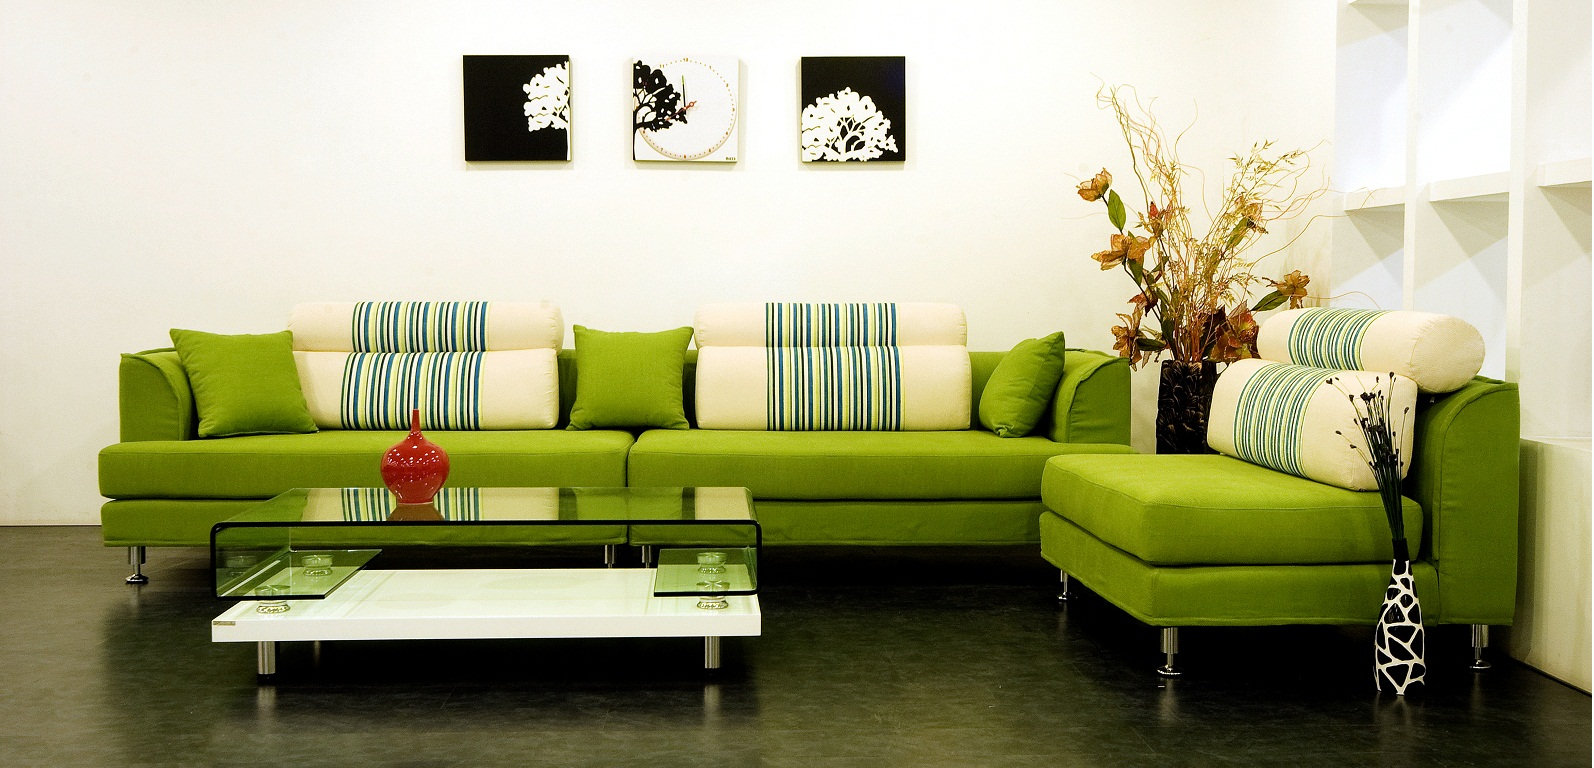 residential-project-in-wakad